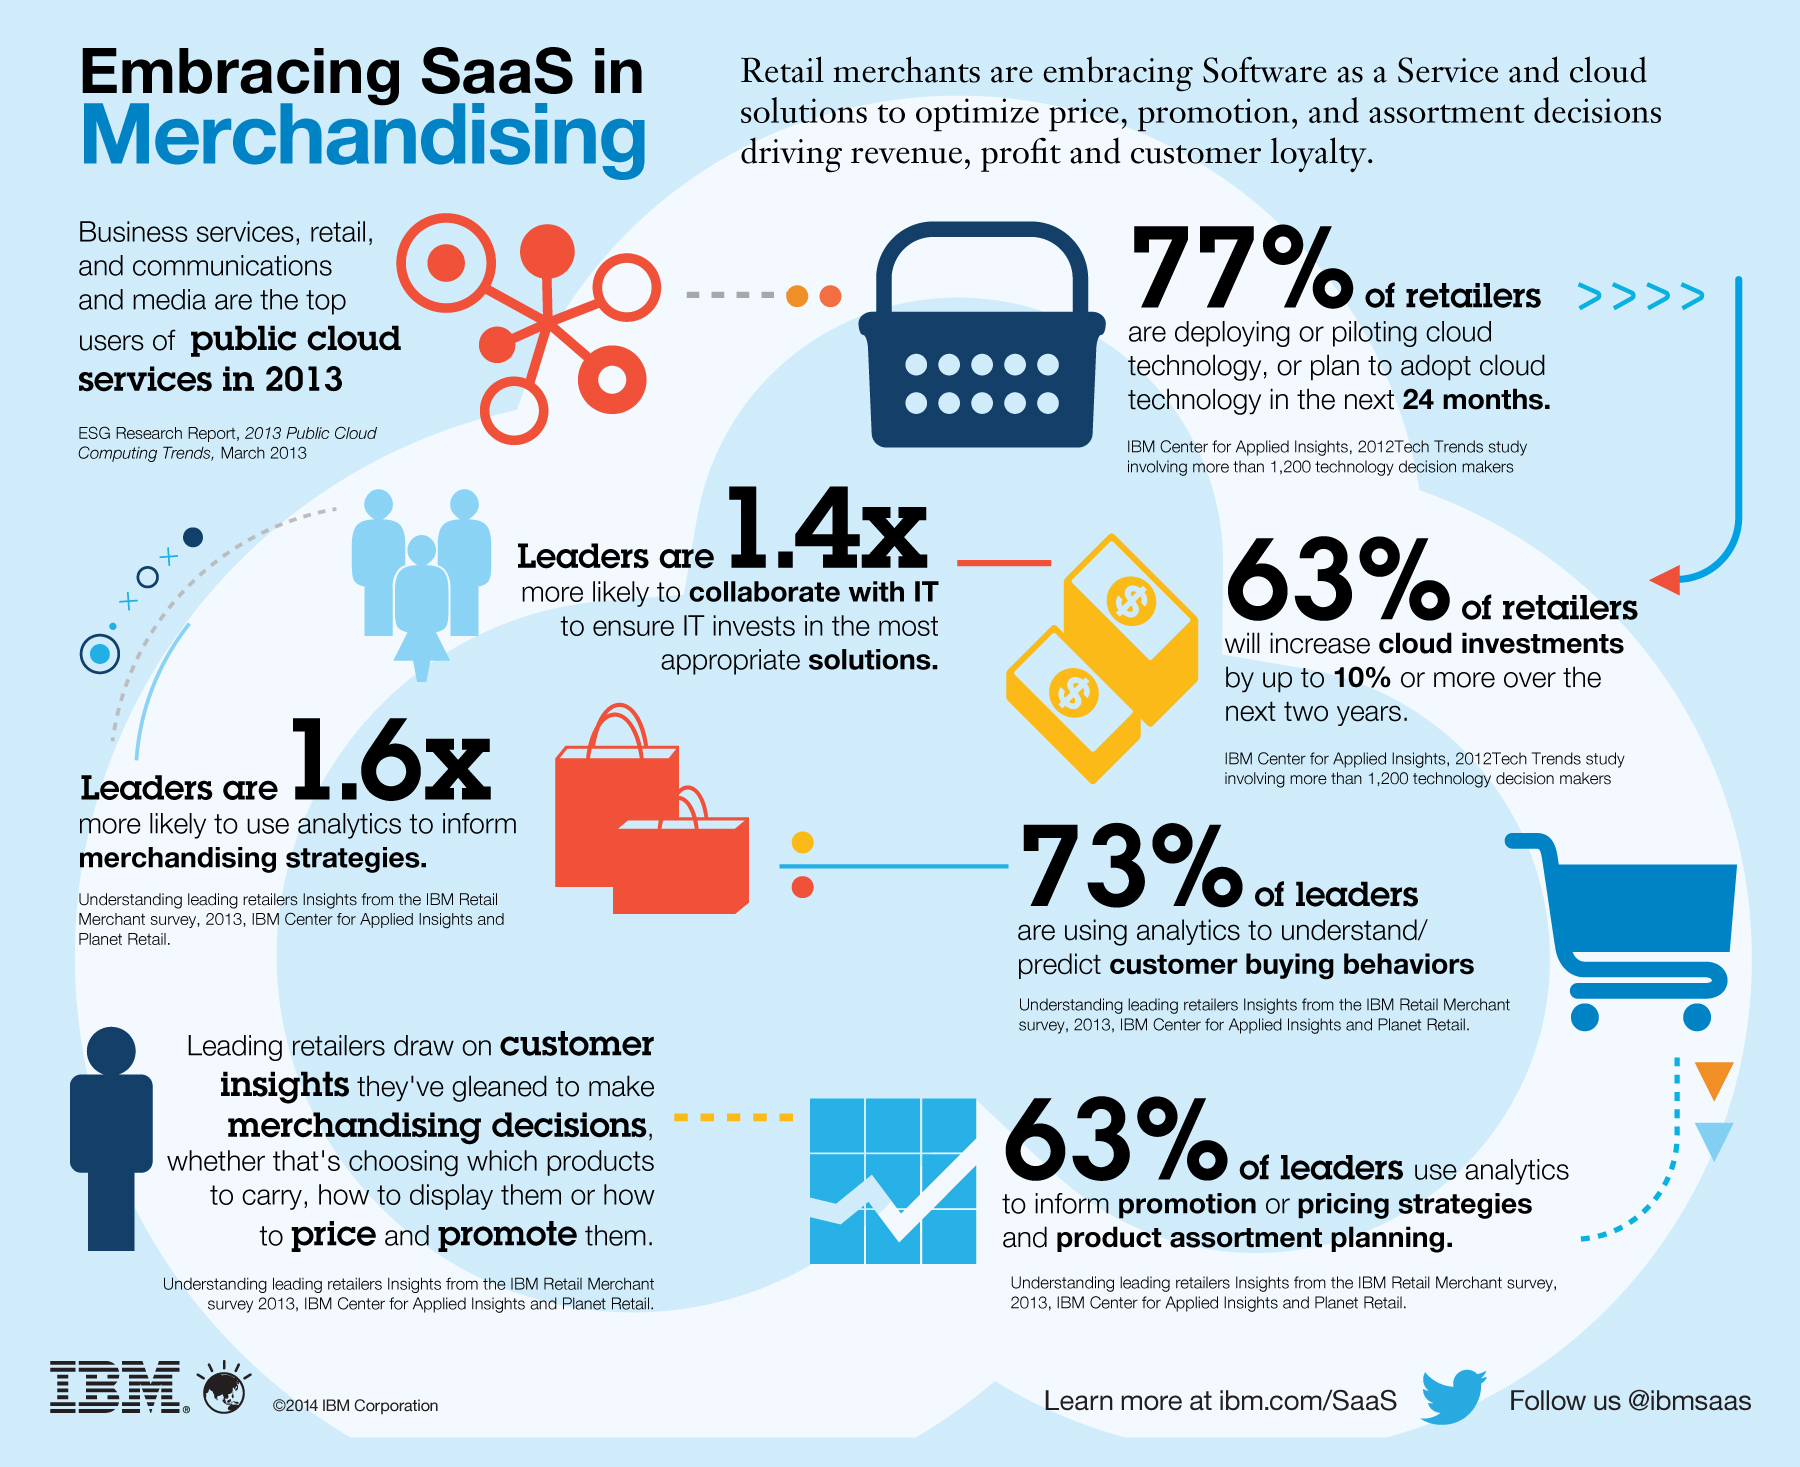 SaaS - Analysis of the Increasing usage in Business